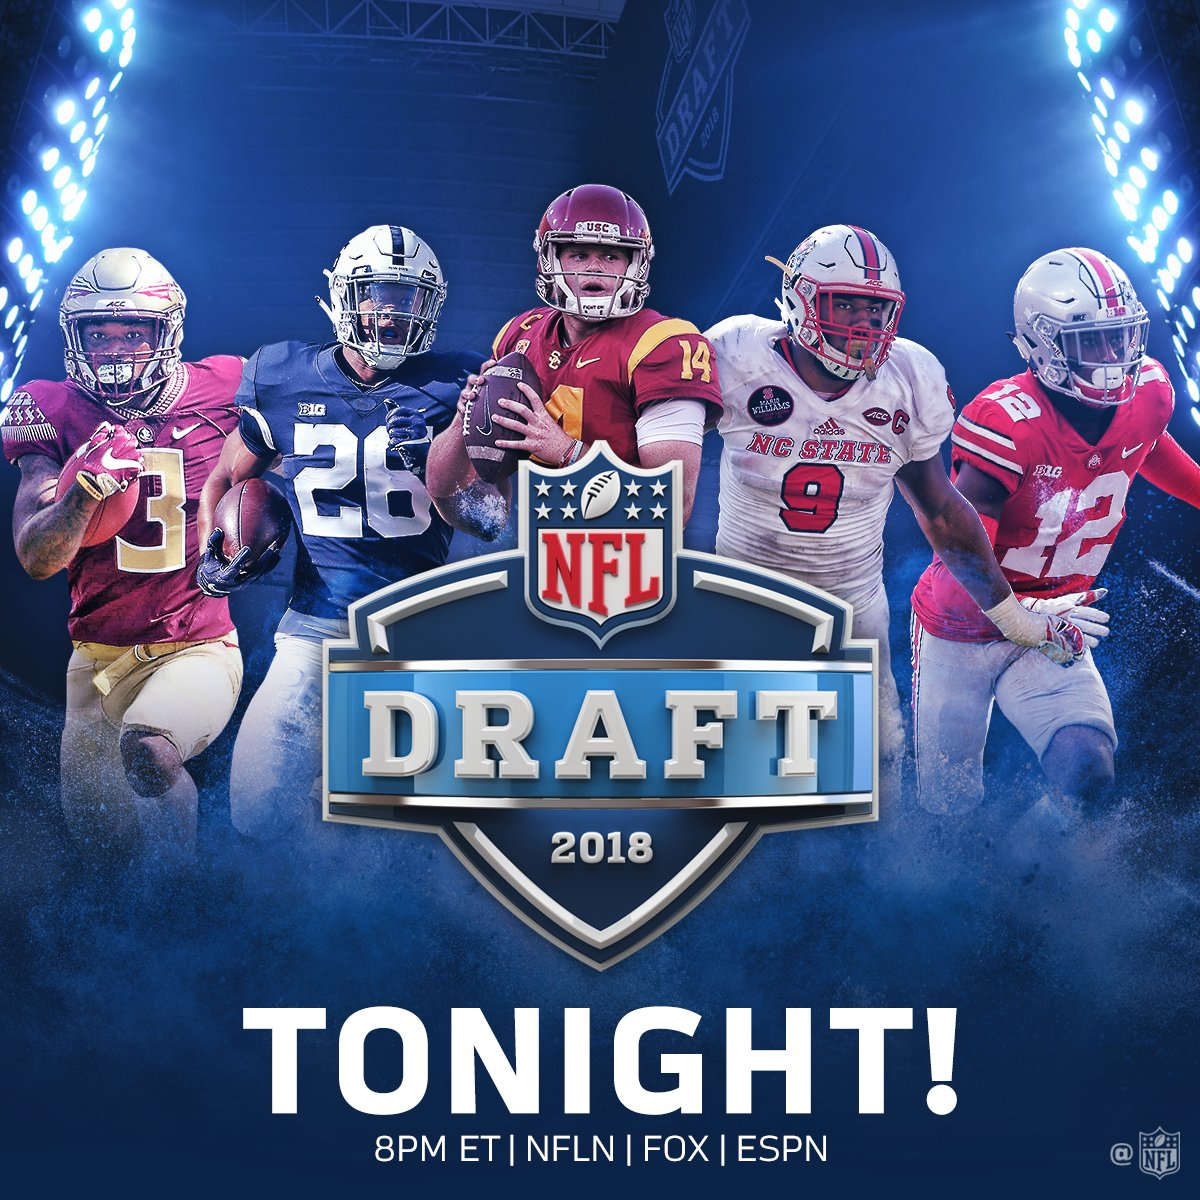 The @NFLDraft is finally here! ��  2018 #NFLDraft: TONIGHT at 8pm ET on NFLN/FOX/ESPN https://t.co/iwYZ3Ruw2t